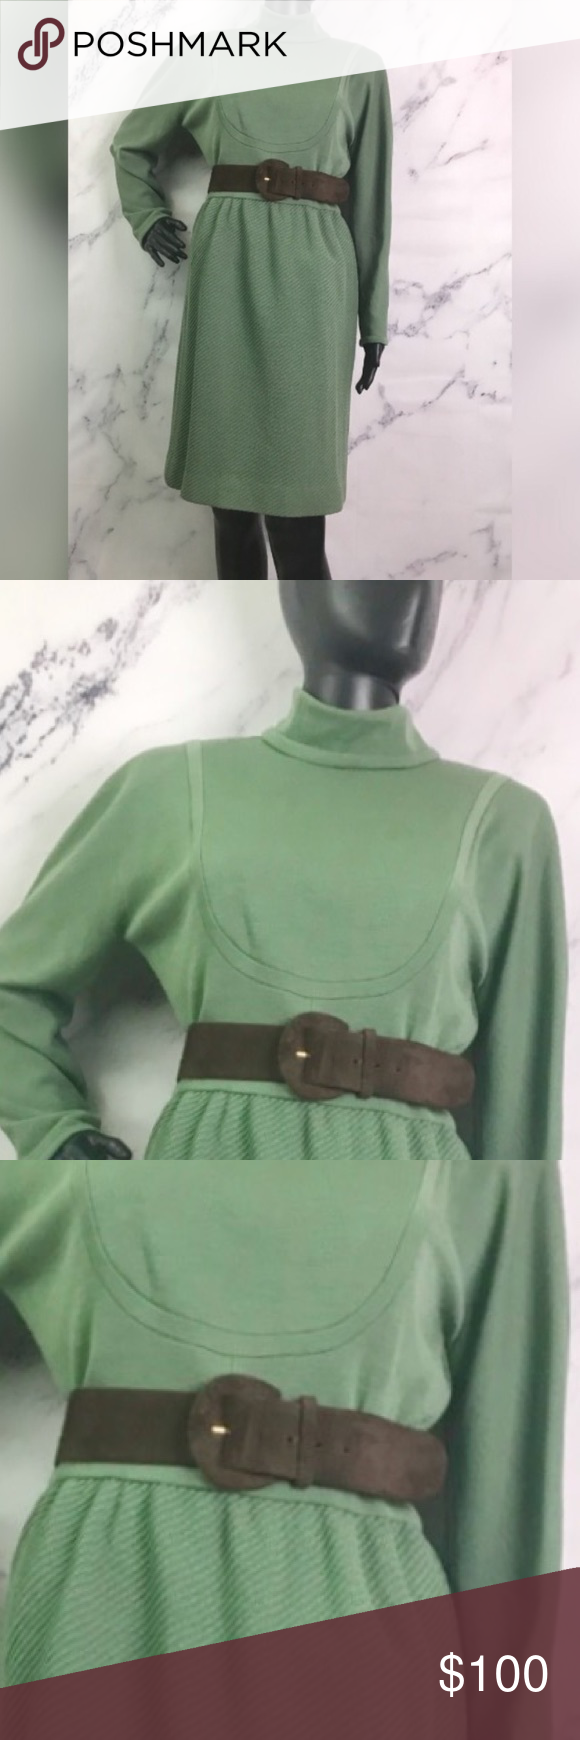 Oscar de La Renta designer showroom dress Light sage green dress with suede brown belt. Excellent condition. Streamlines the body with substantially luxurious cotton fabric coverage. Oscar de la Renta Other #sagegreendress